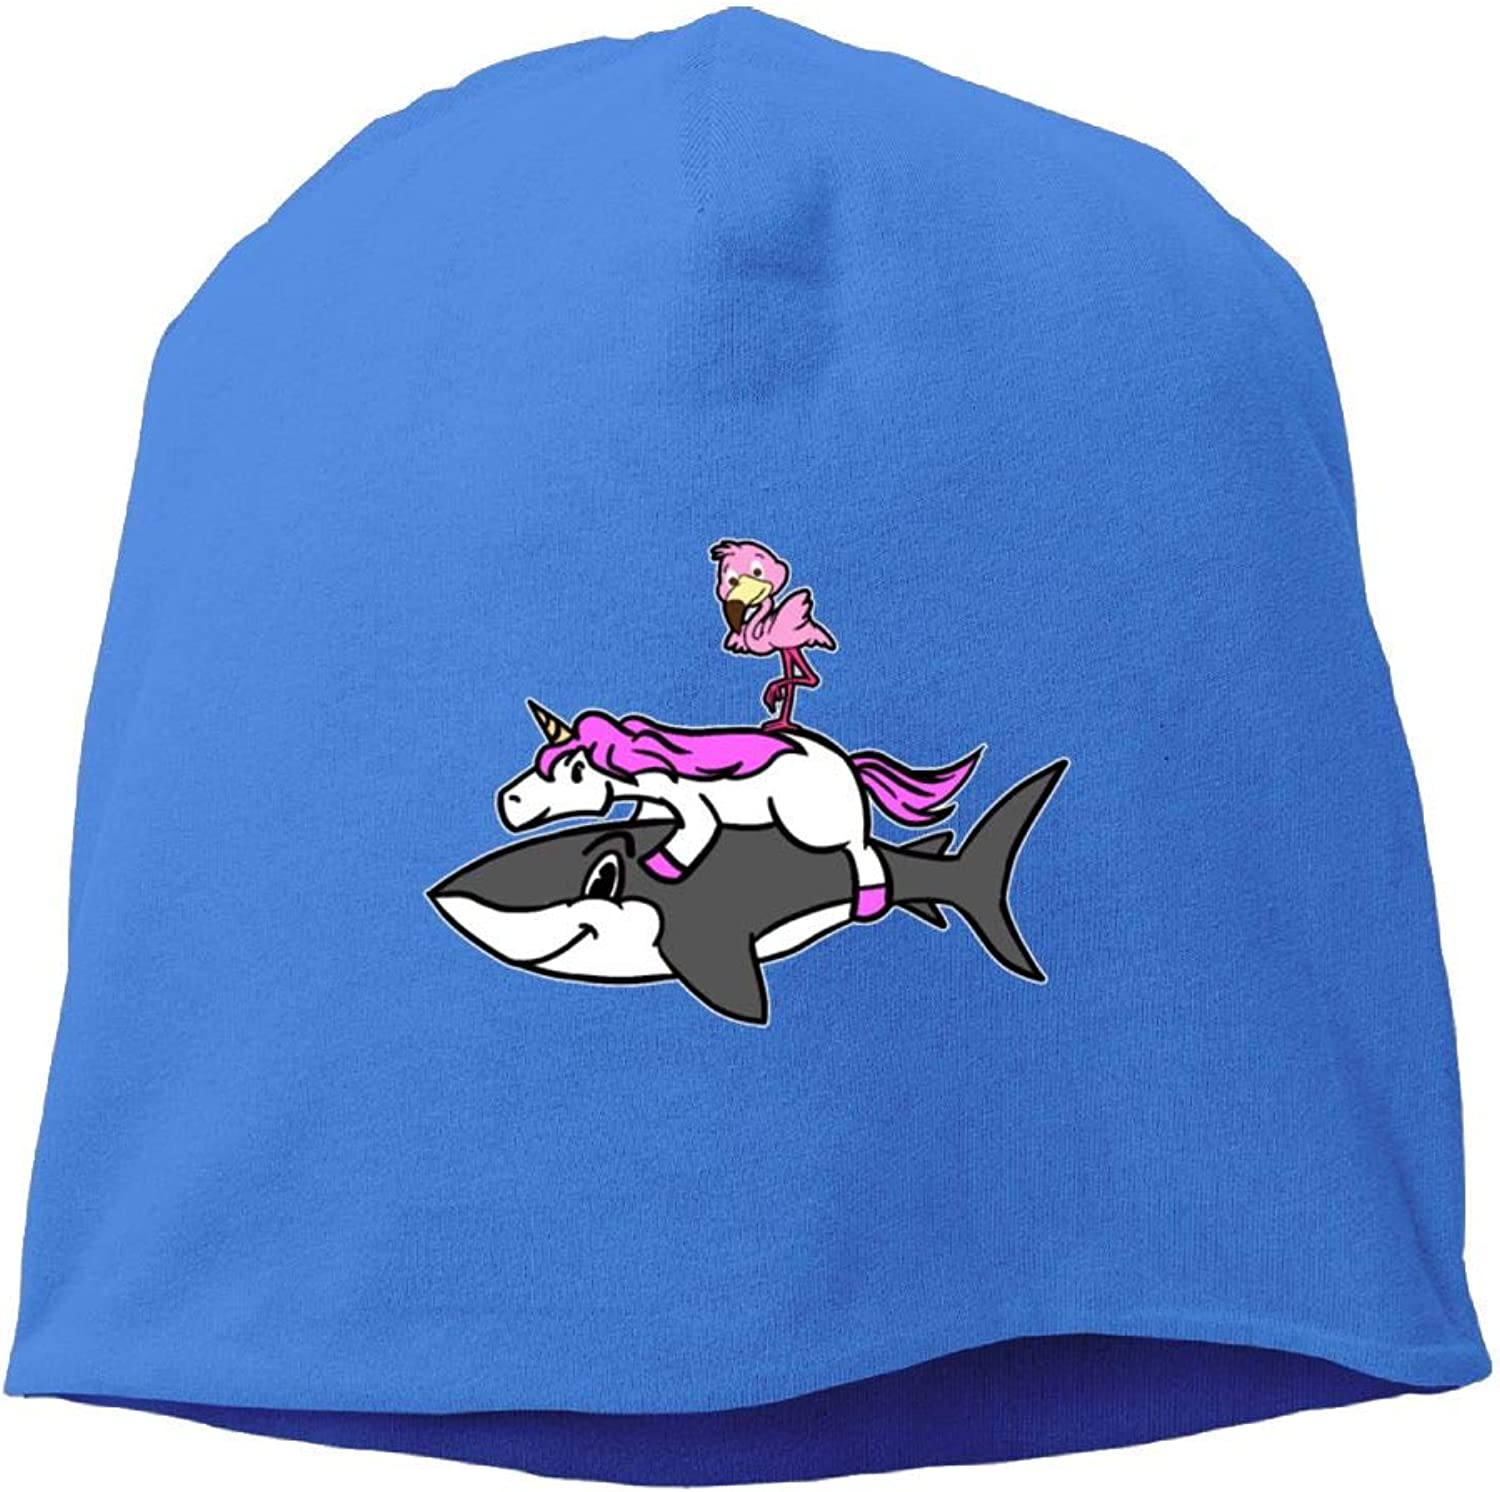 Jusxout Flamingo Riding Unicorn Shark Knit Cap Beanie Hats Women's